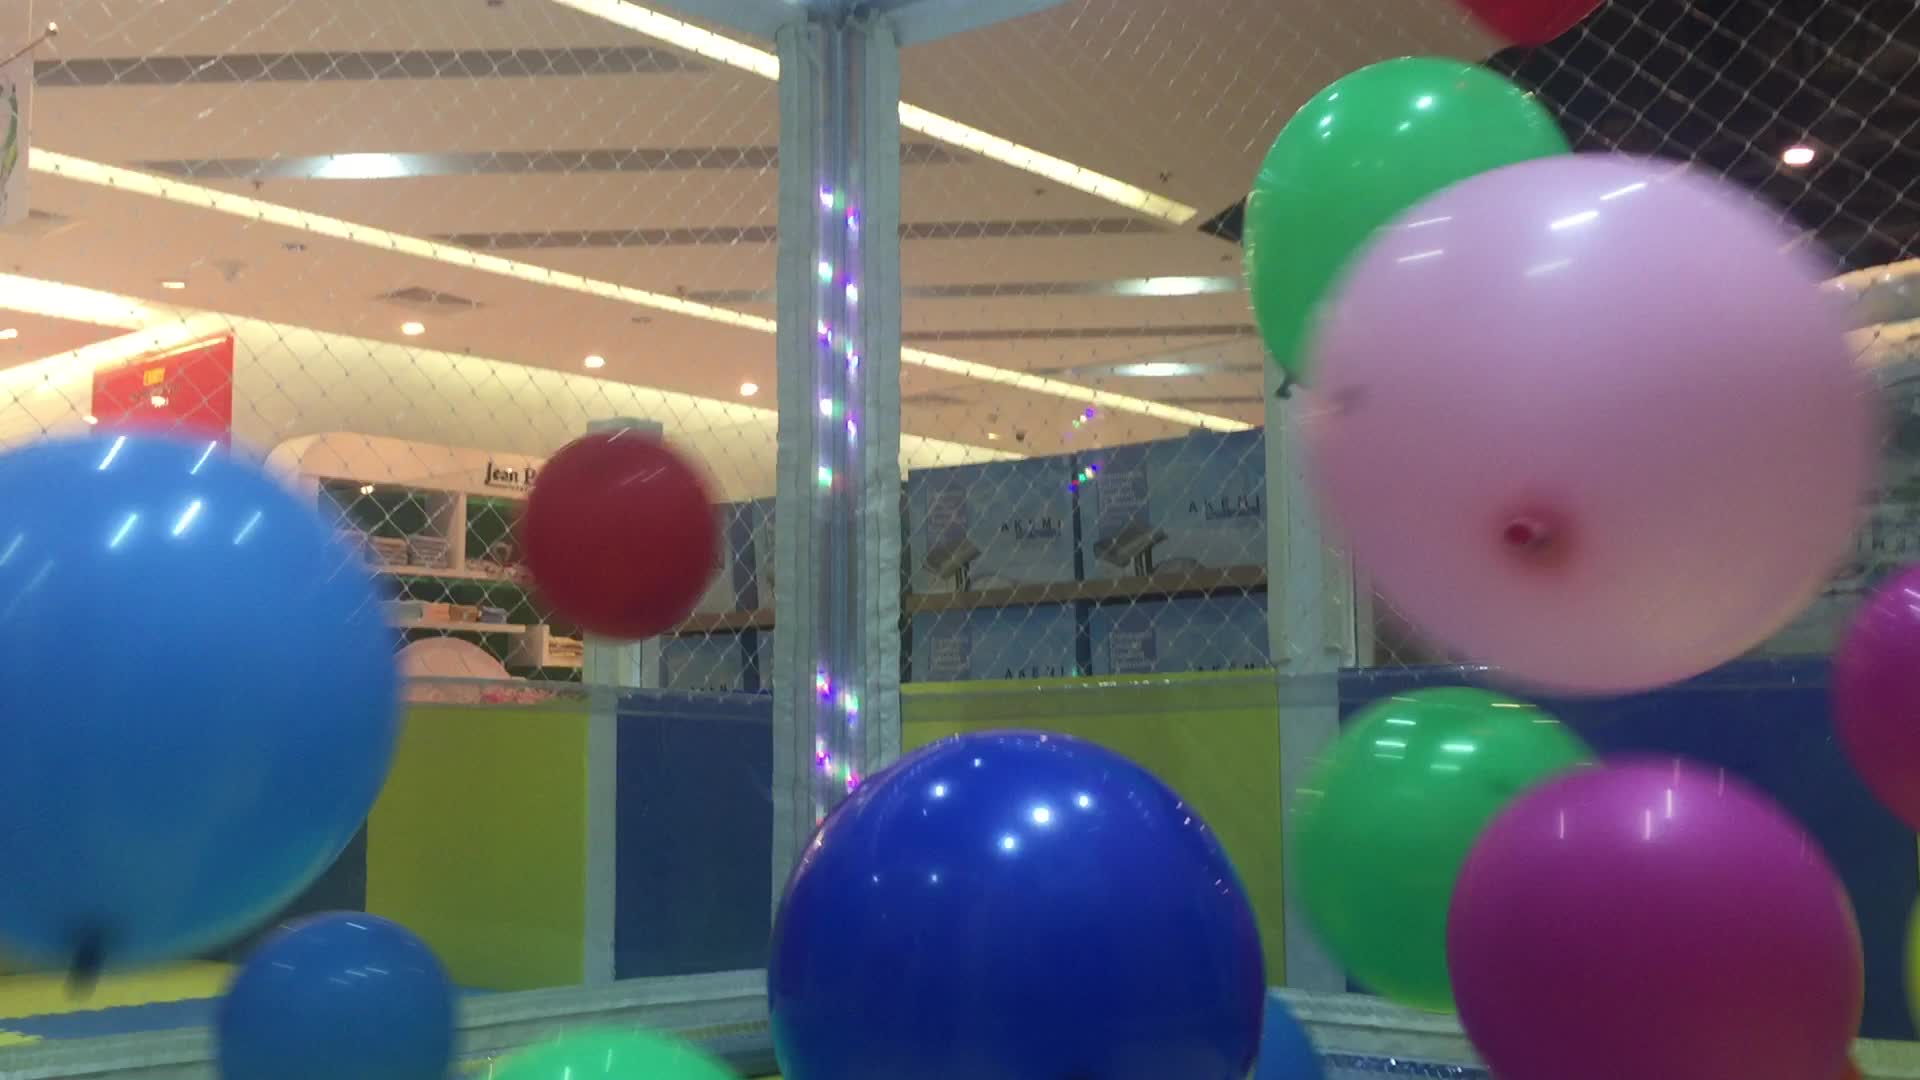 Balloon Pop Surprise Toys Challenge Giant Ball Pit In Huge